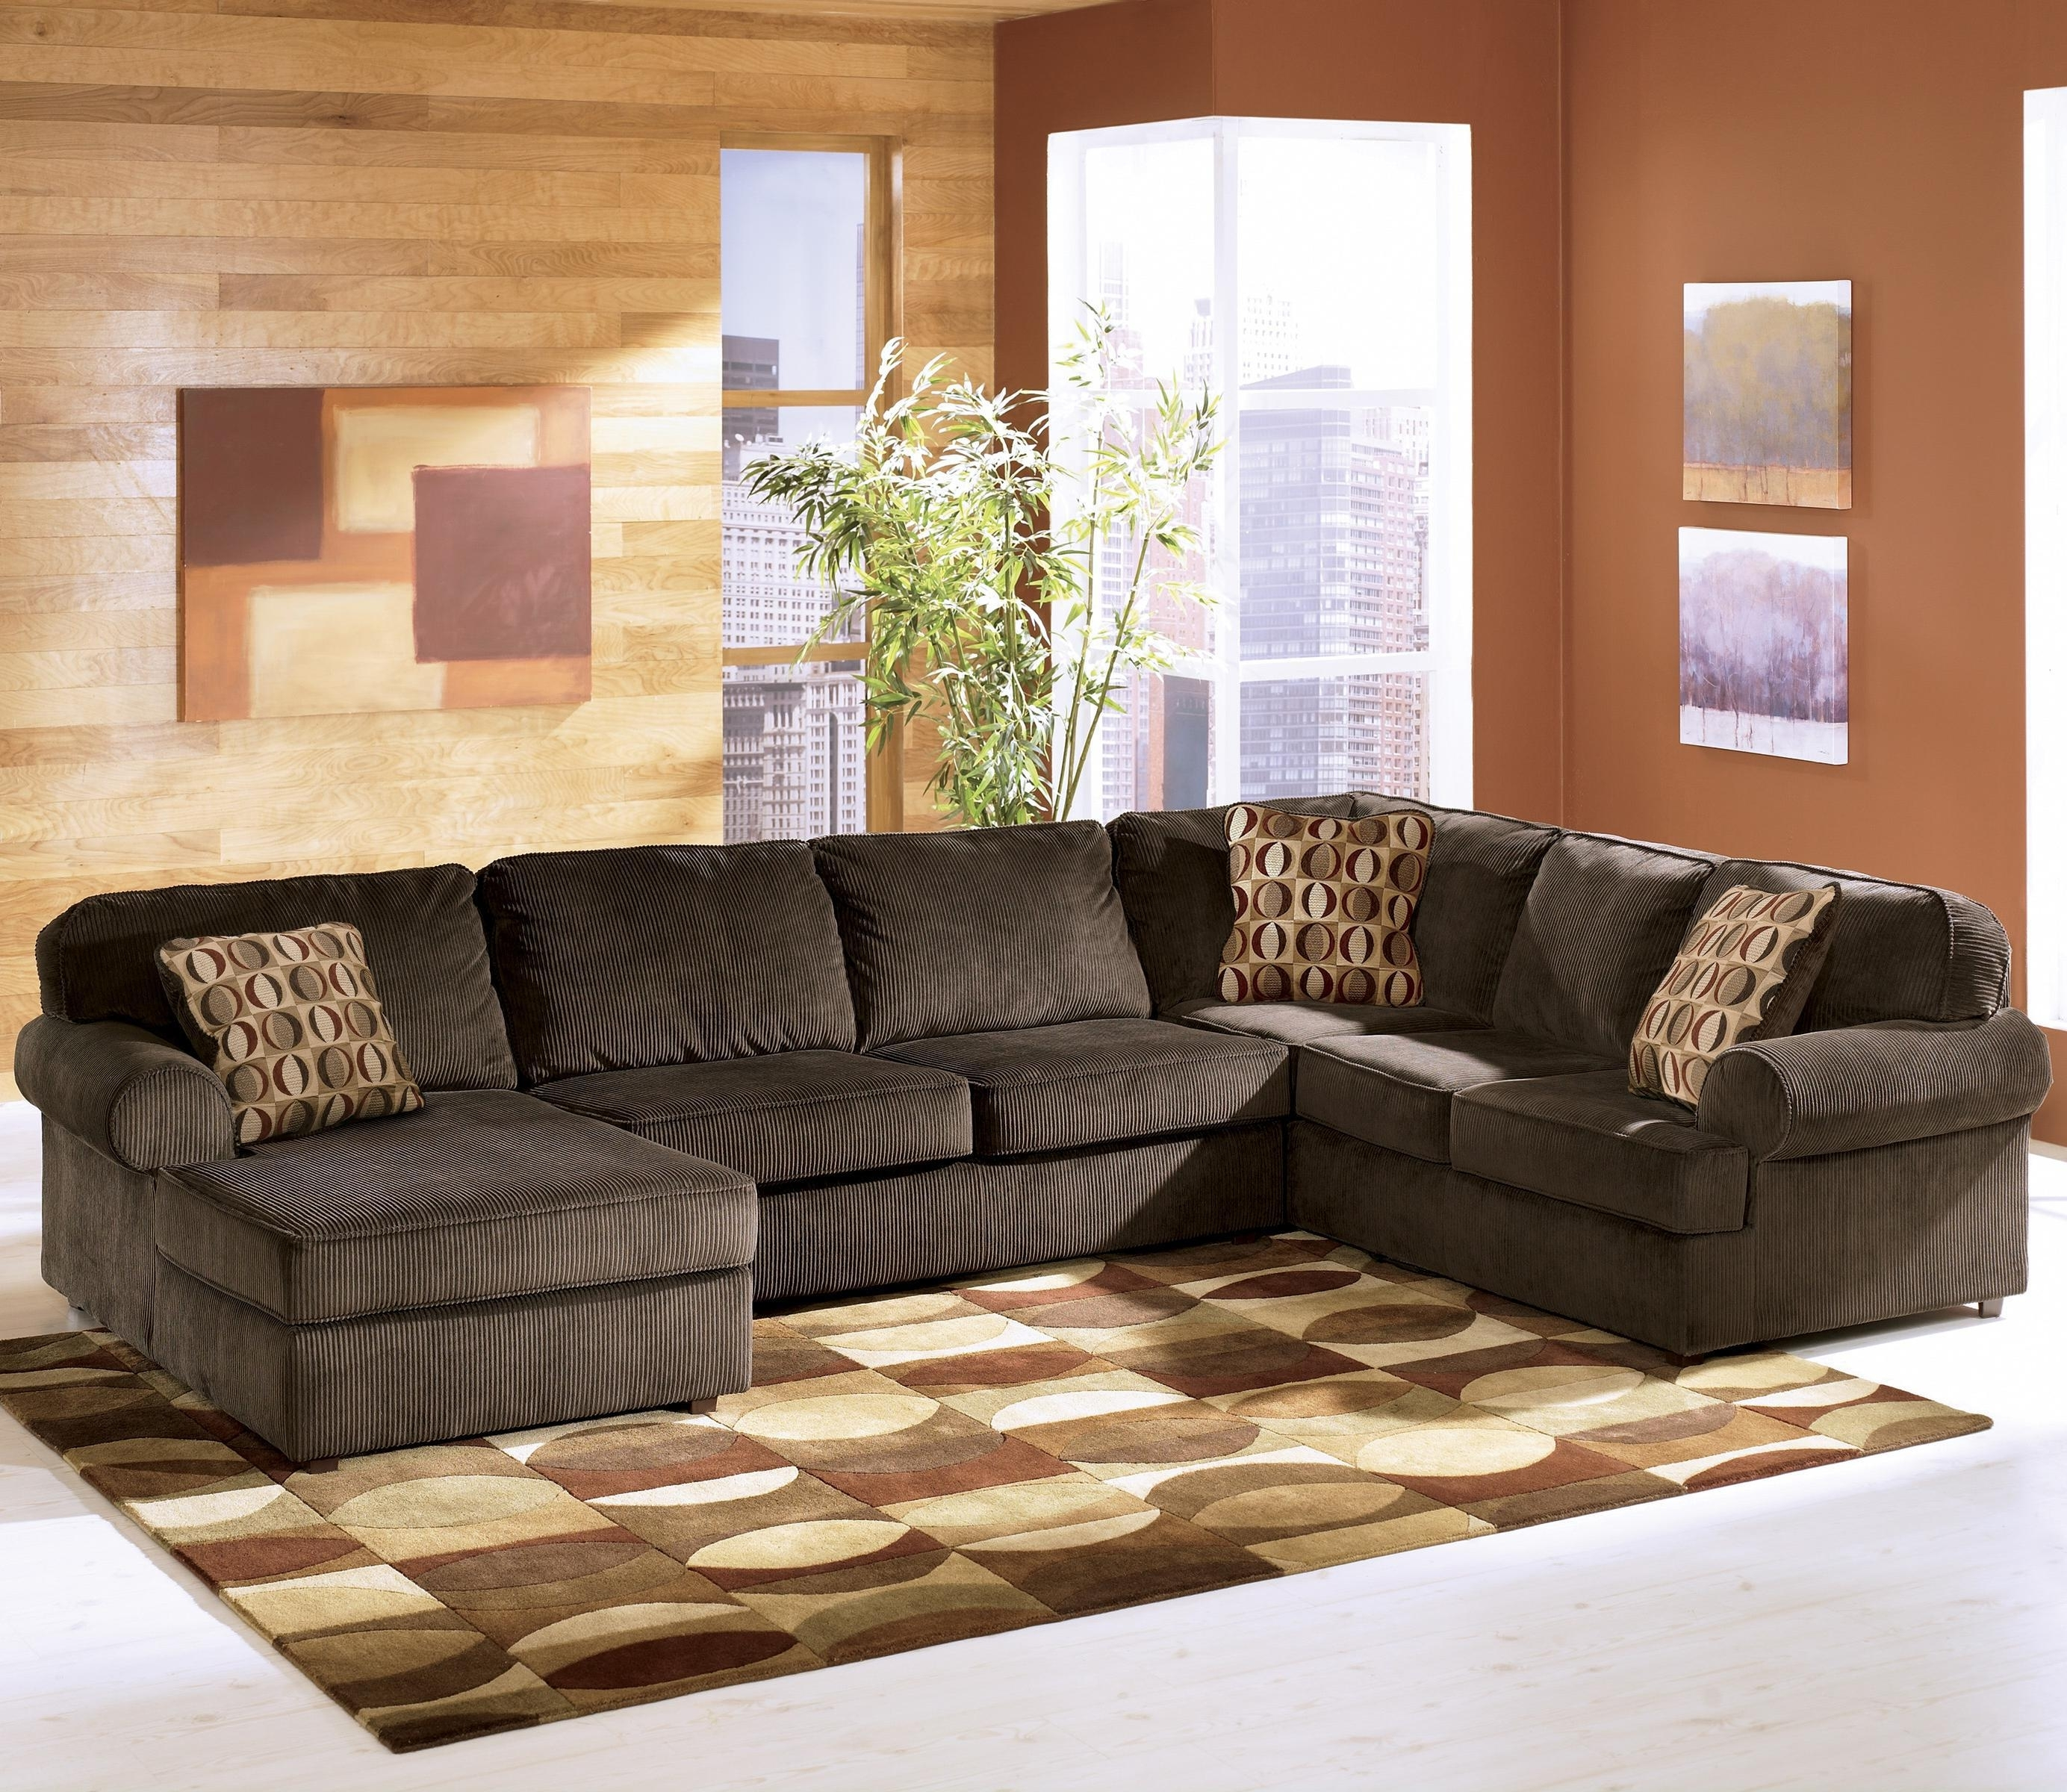 Furniture: Robert Michael Furniture Sectional | Robert Michaels Inside Sam Levitz Sectional Sofas (Image 5 of 10)